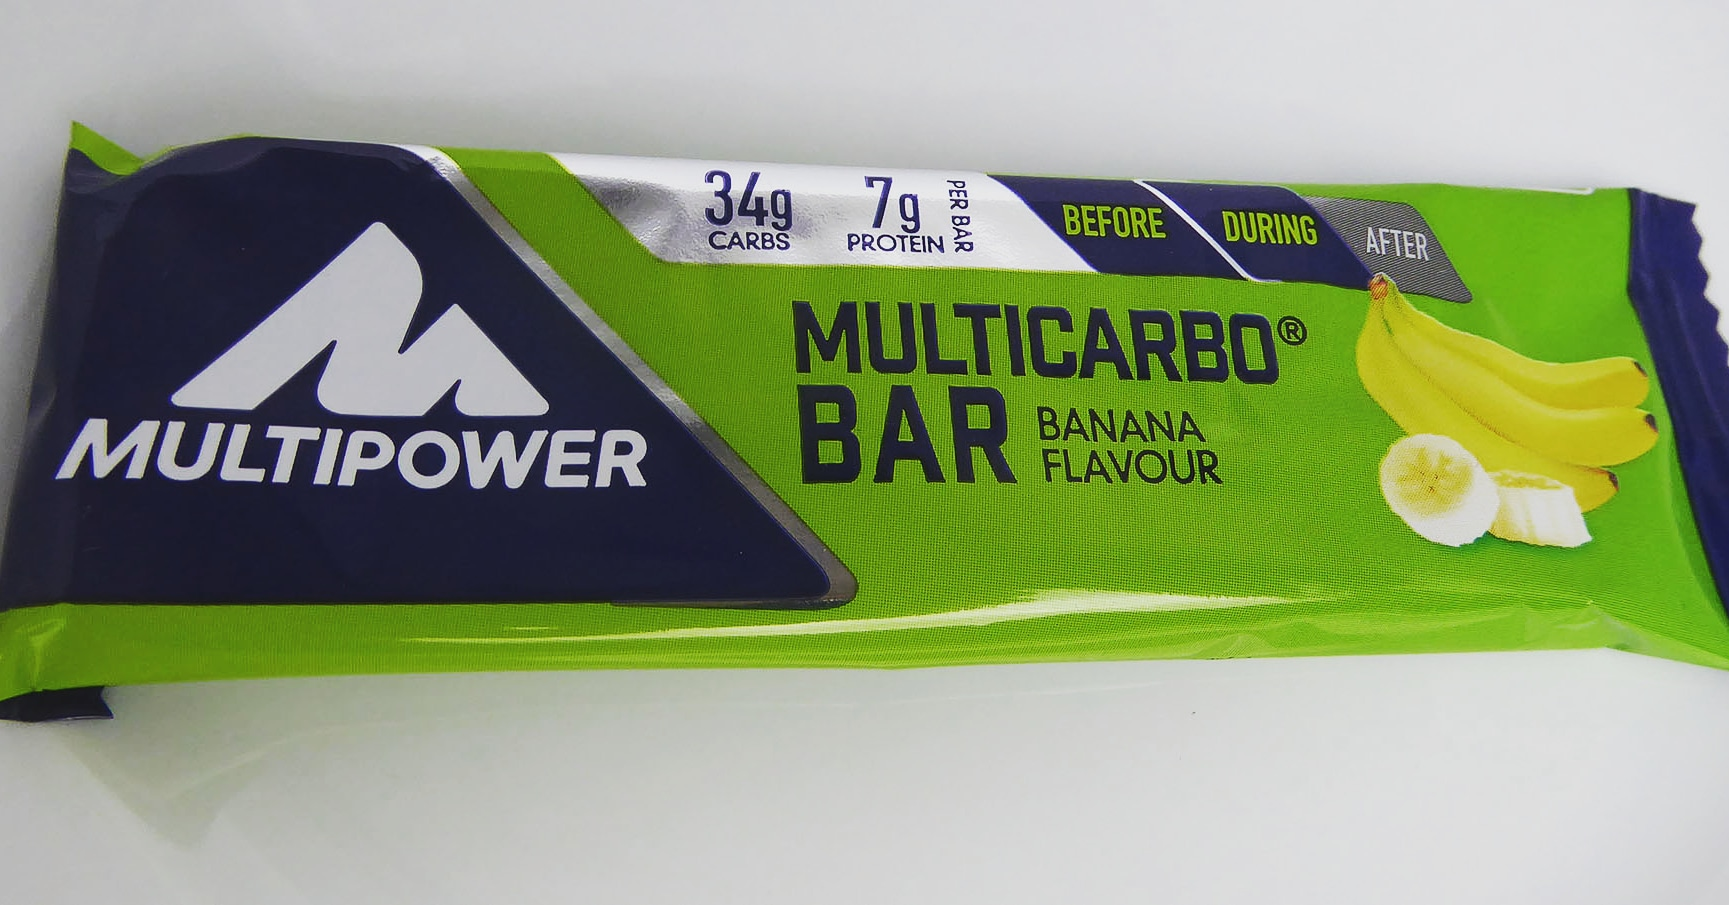 Multipower Protein Riegel Eiweiß Riegel Multicarbo Banane